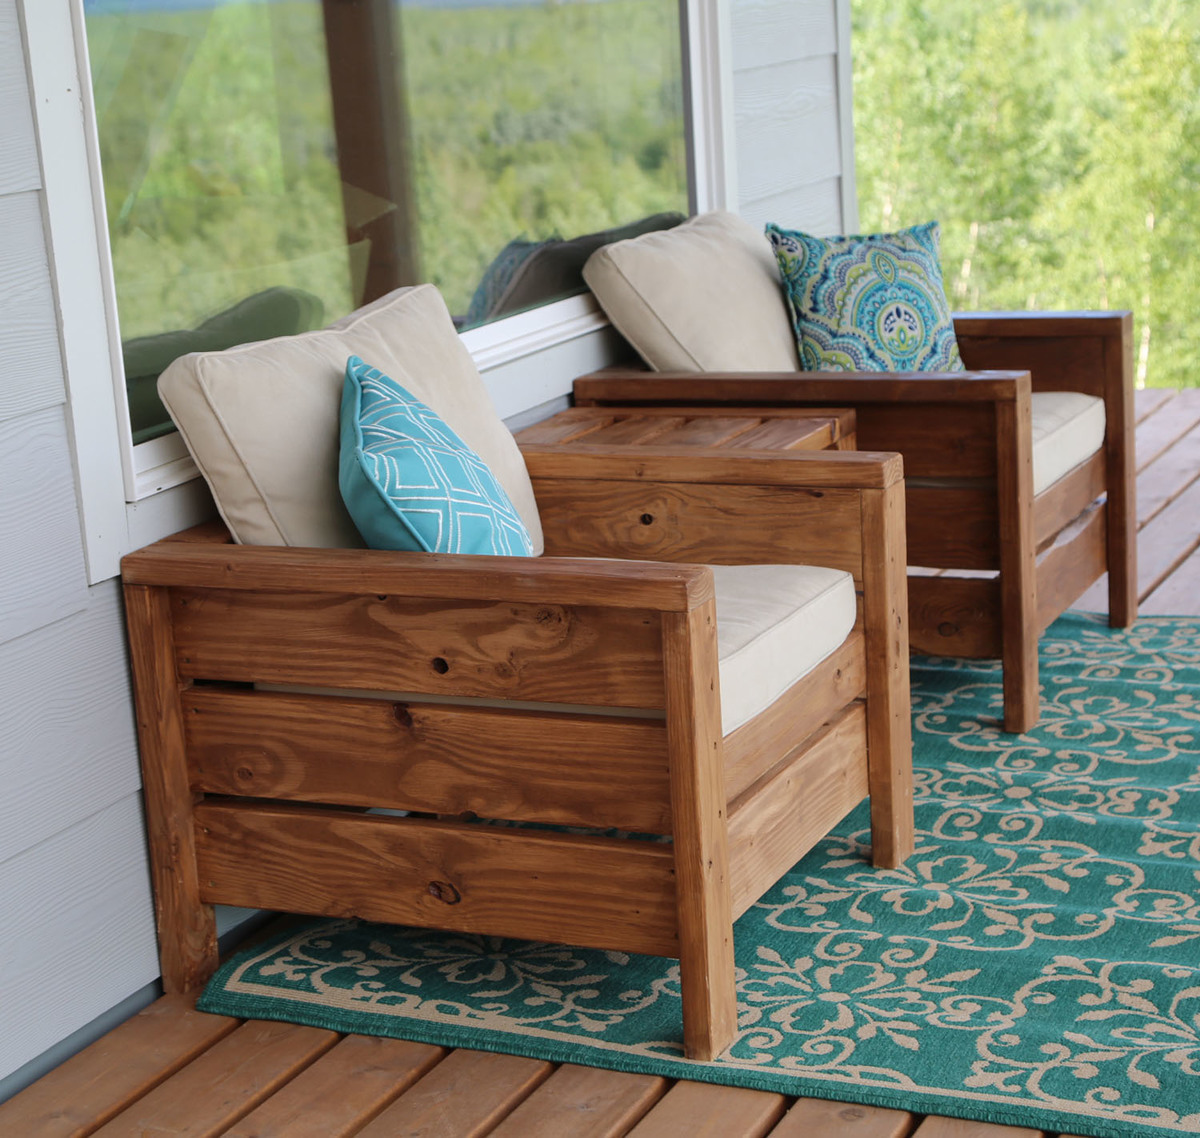 Diy Wooden Furniture. Easy To Build, Sturdy Modern Outdoor Chairs For Deck  Or Patio